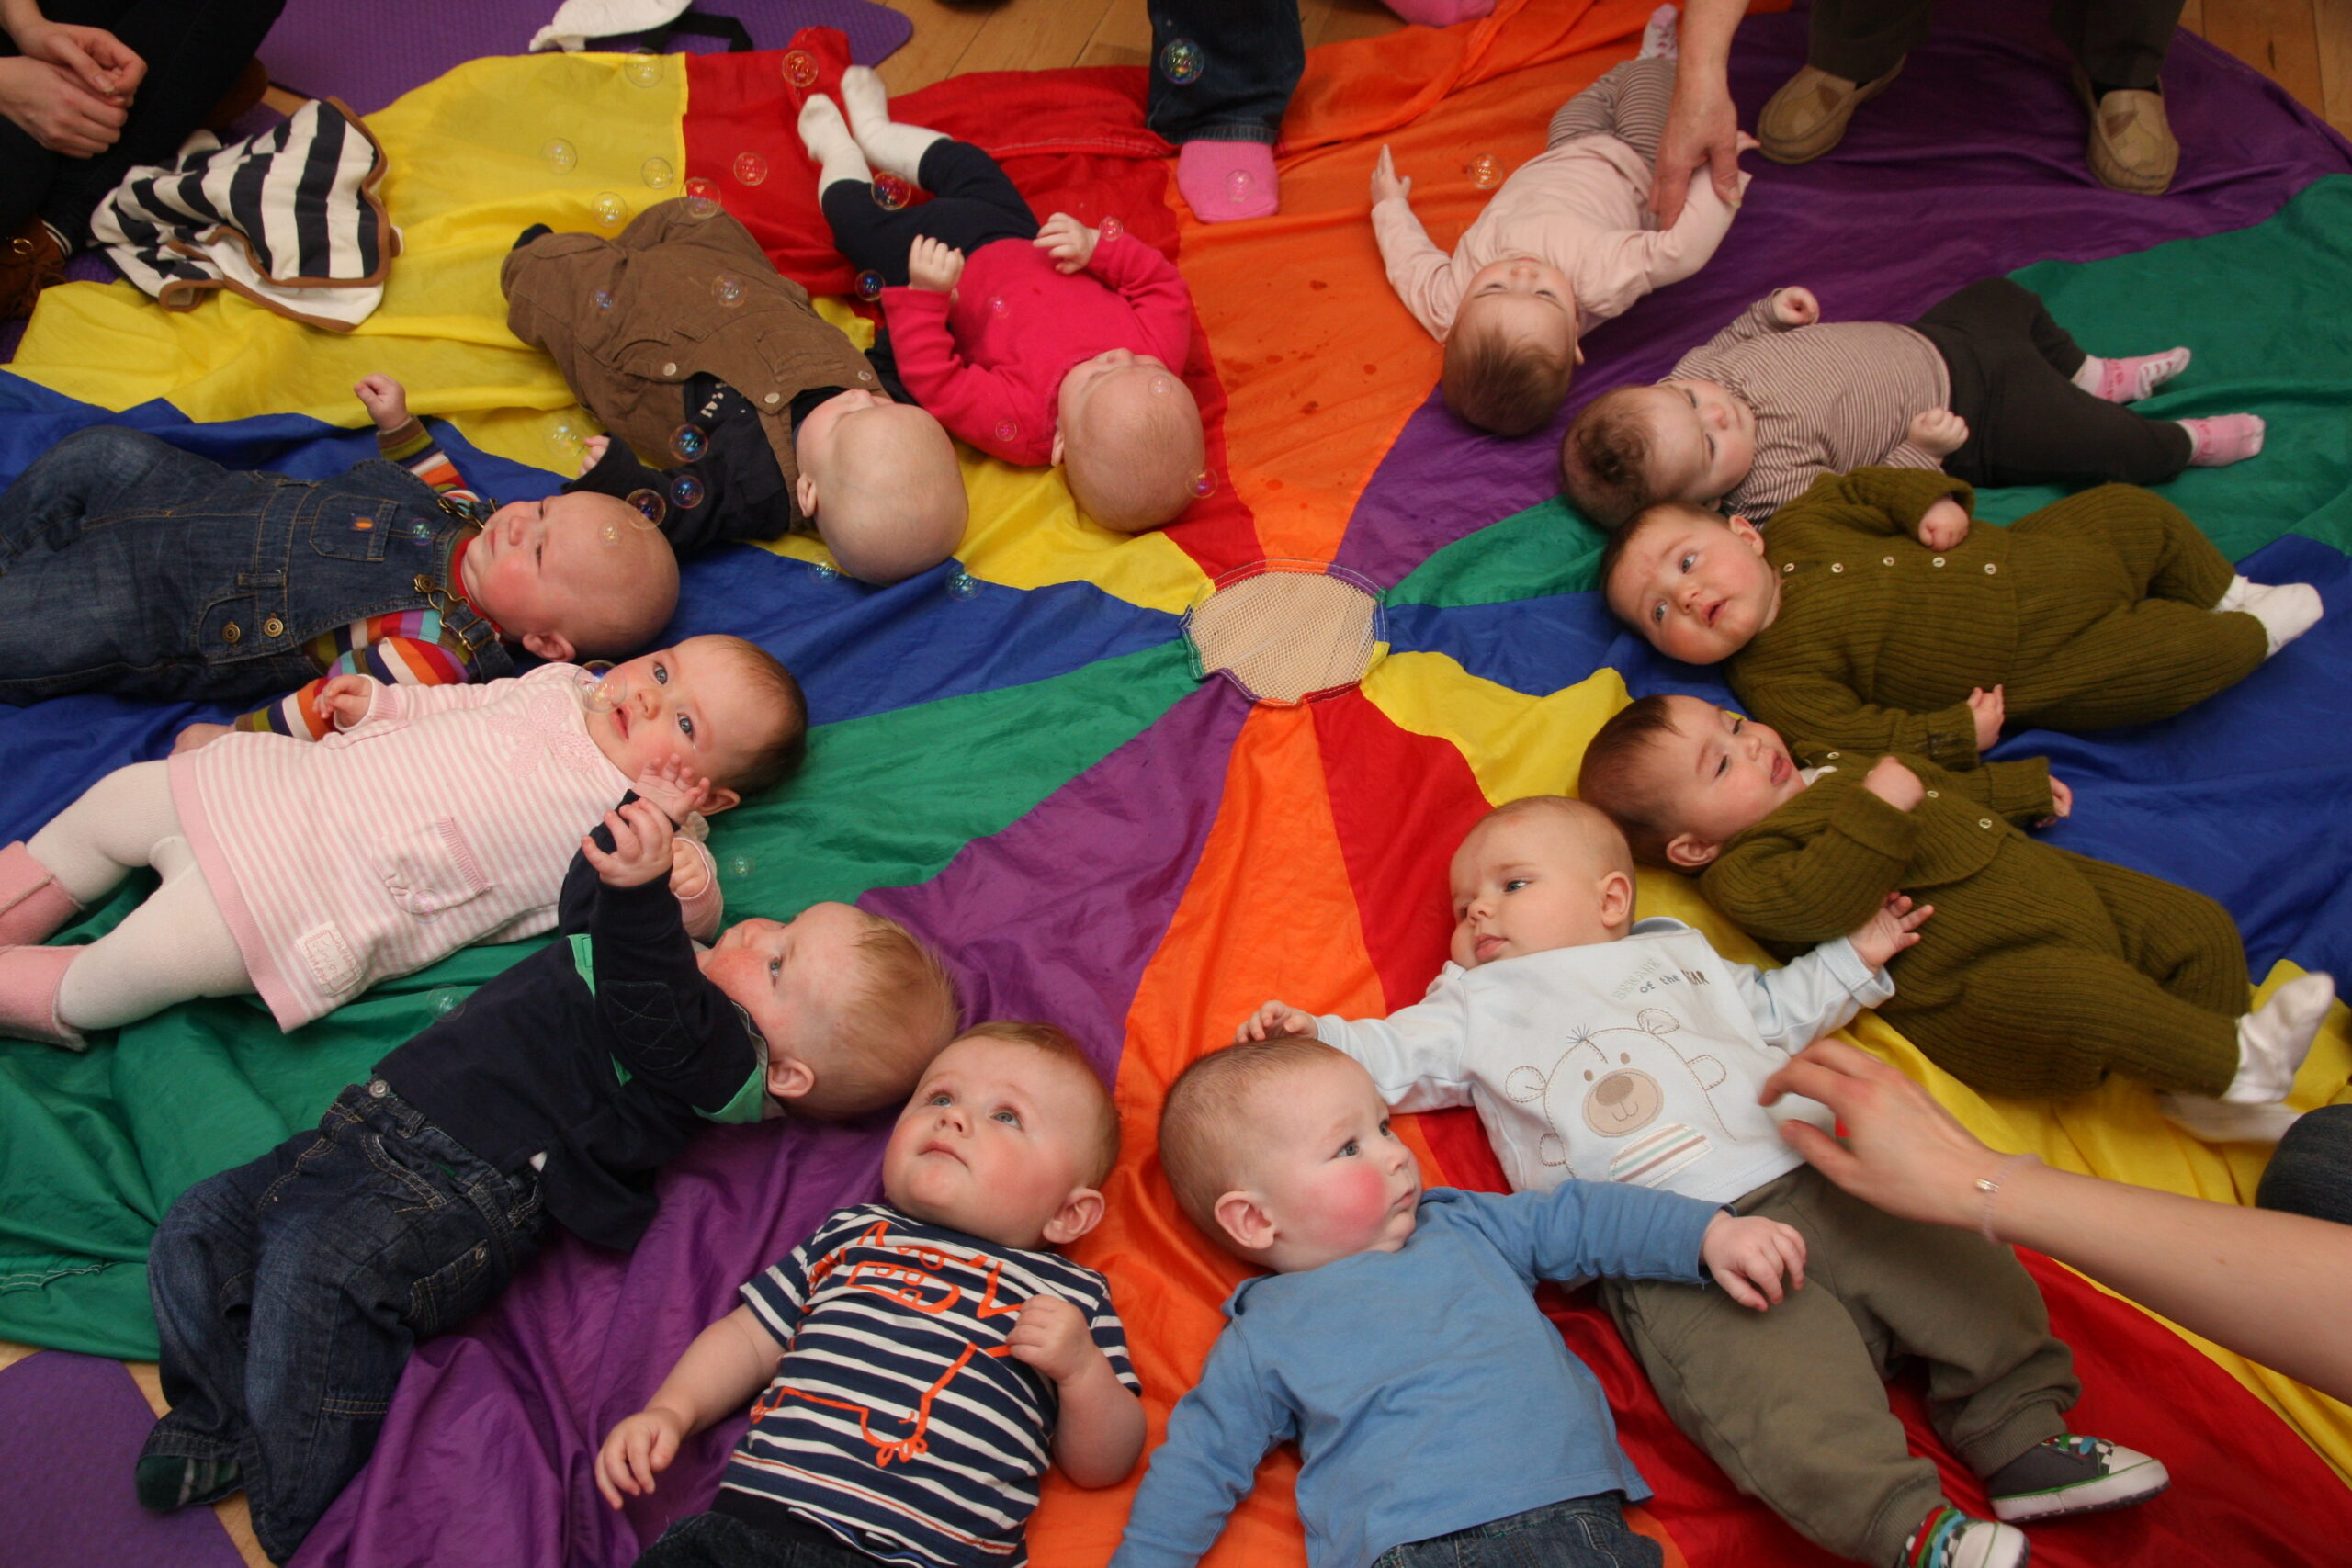 Brightly coloured image of several babies on their backs in a circle